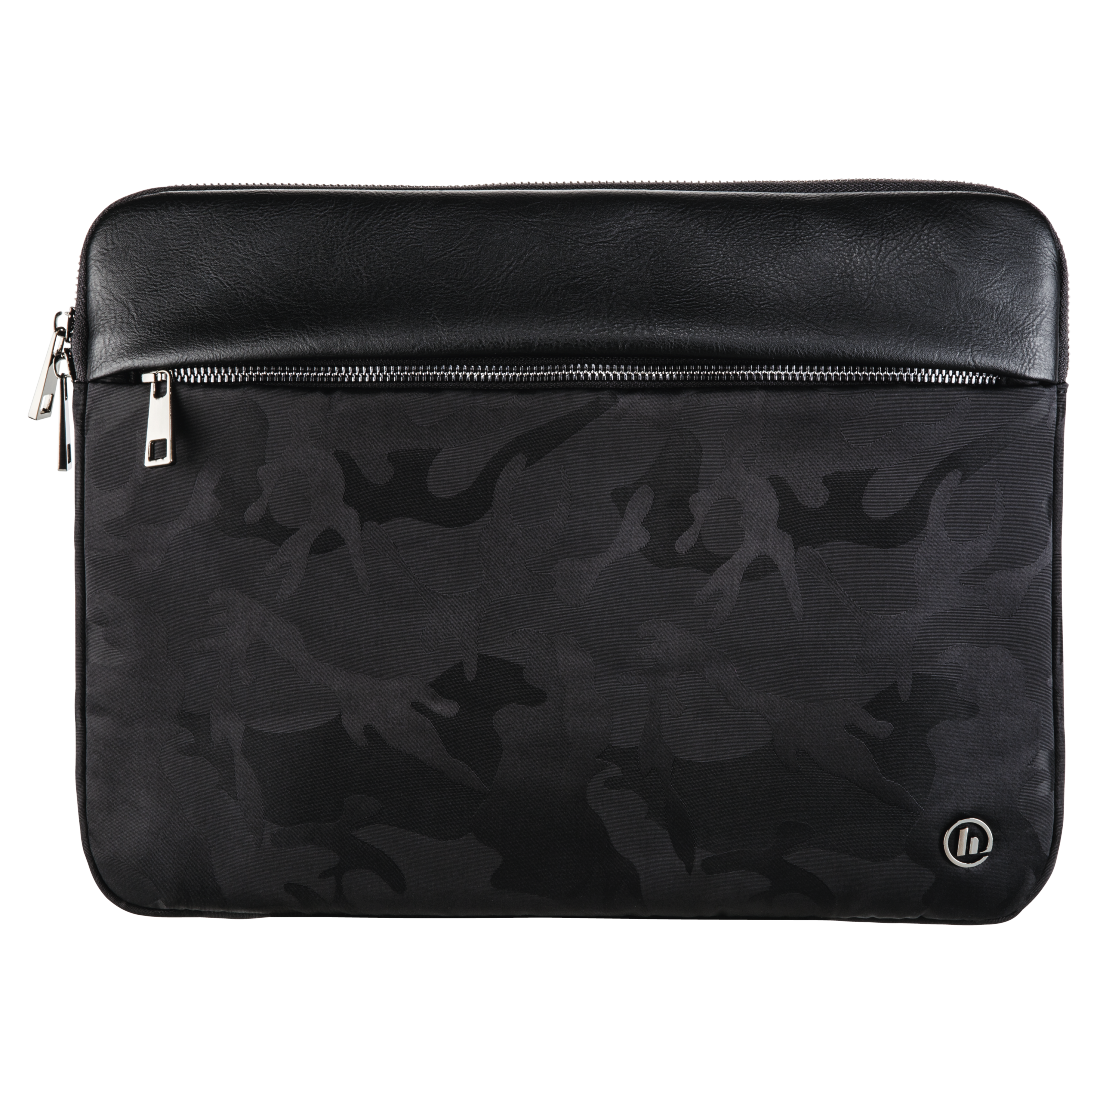 abx High-Res Image - Hama, Mission Camo Notebook Sleeve, up to 40 cm (15.6), gun metal